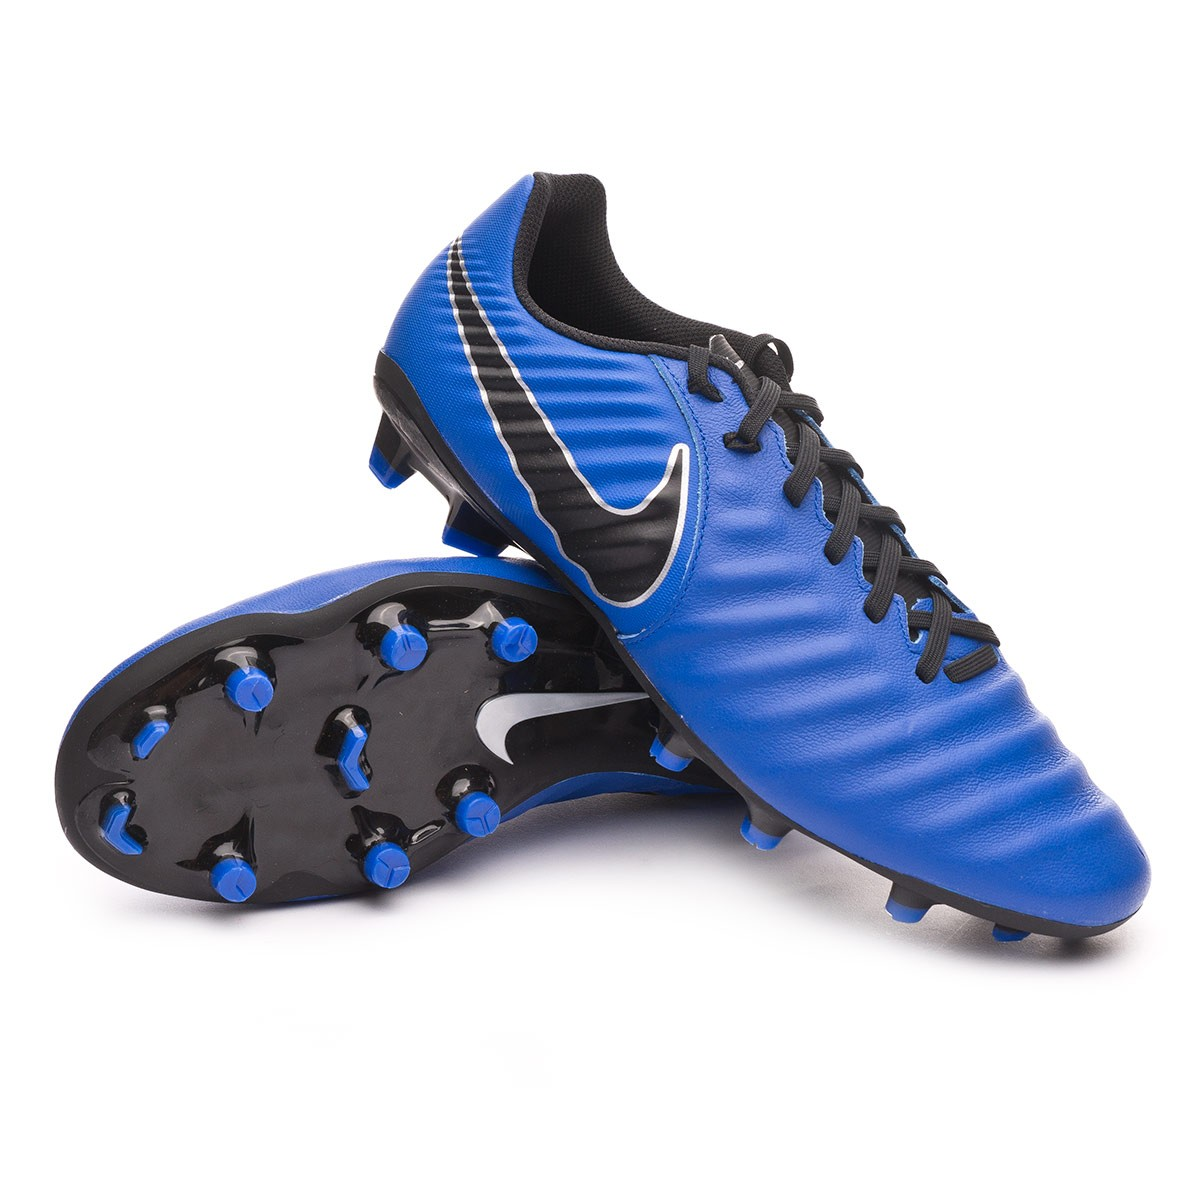 Espectáculo Penetración Implementar  Football Boots Nike Tiempo Legend VII Academy FG Racer blue-Black-Metallic  silver - Football store Fútbol Emotion